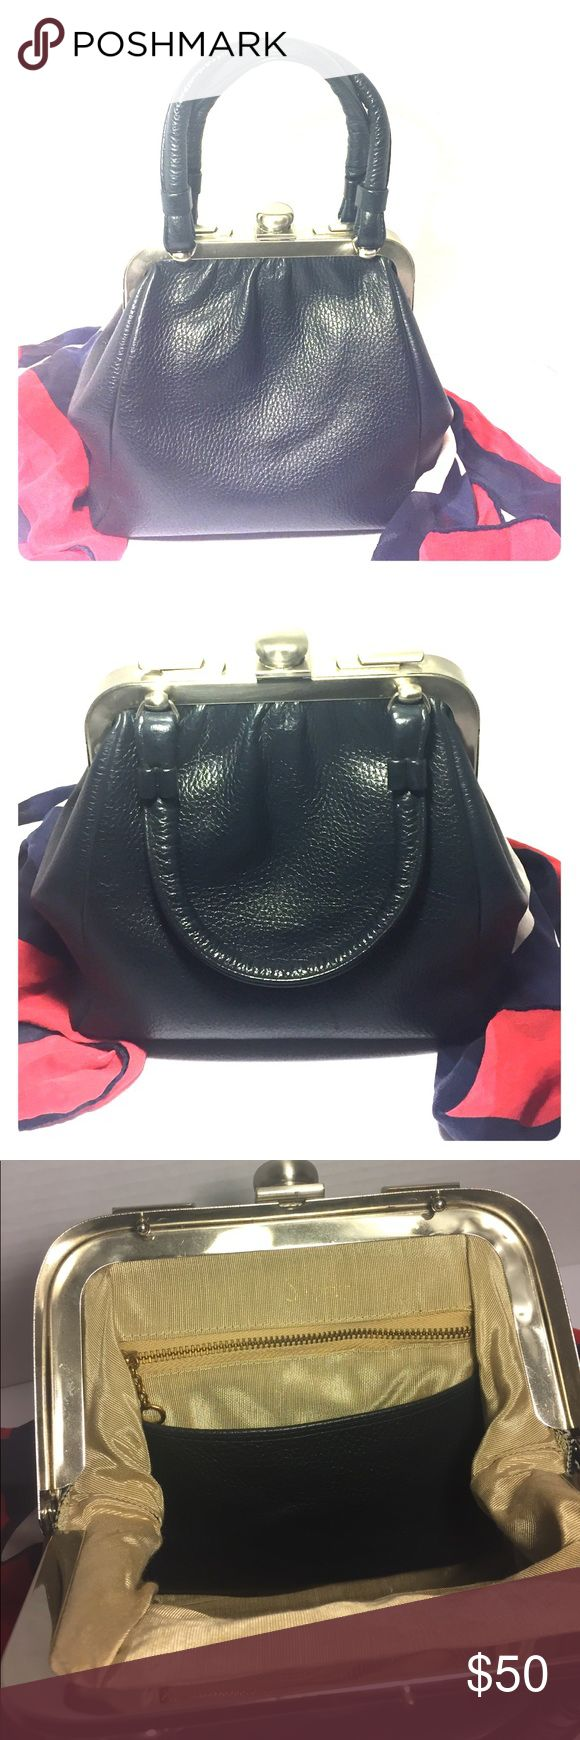 Saber navy leather vintage purse Navy pocketbook with silver tone hardware. Would look great with spectator shoe. 8 inches long, 81/2 inches tall, strap drop 41/2 inches, depth 3 inches. saber Bags